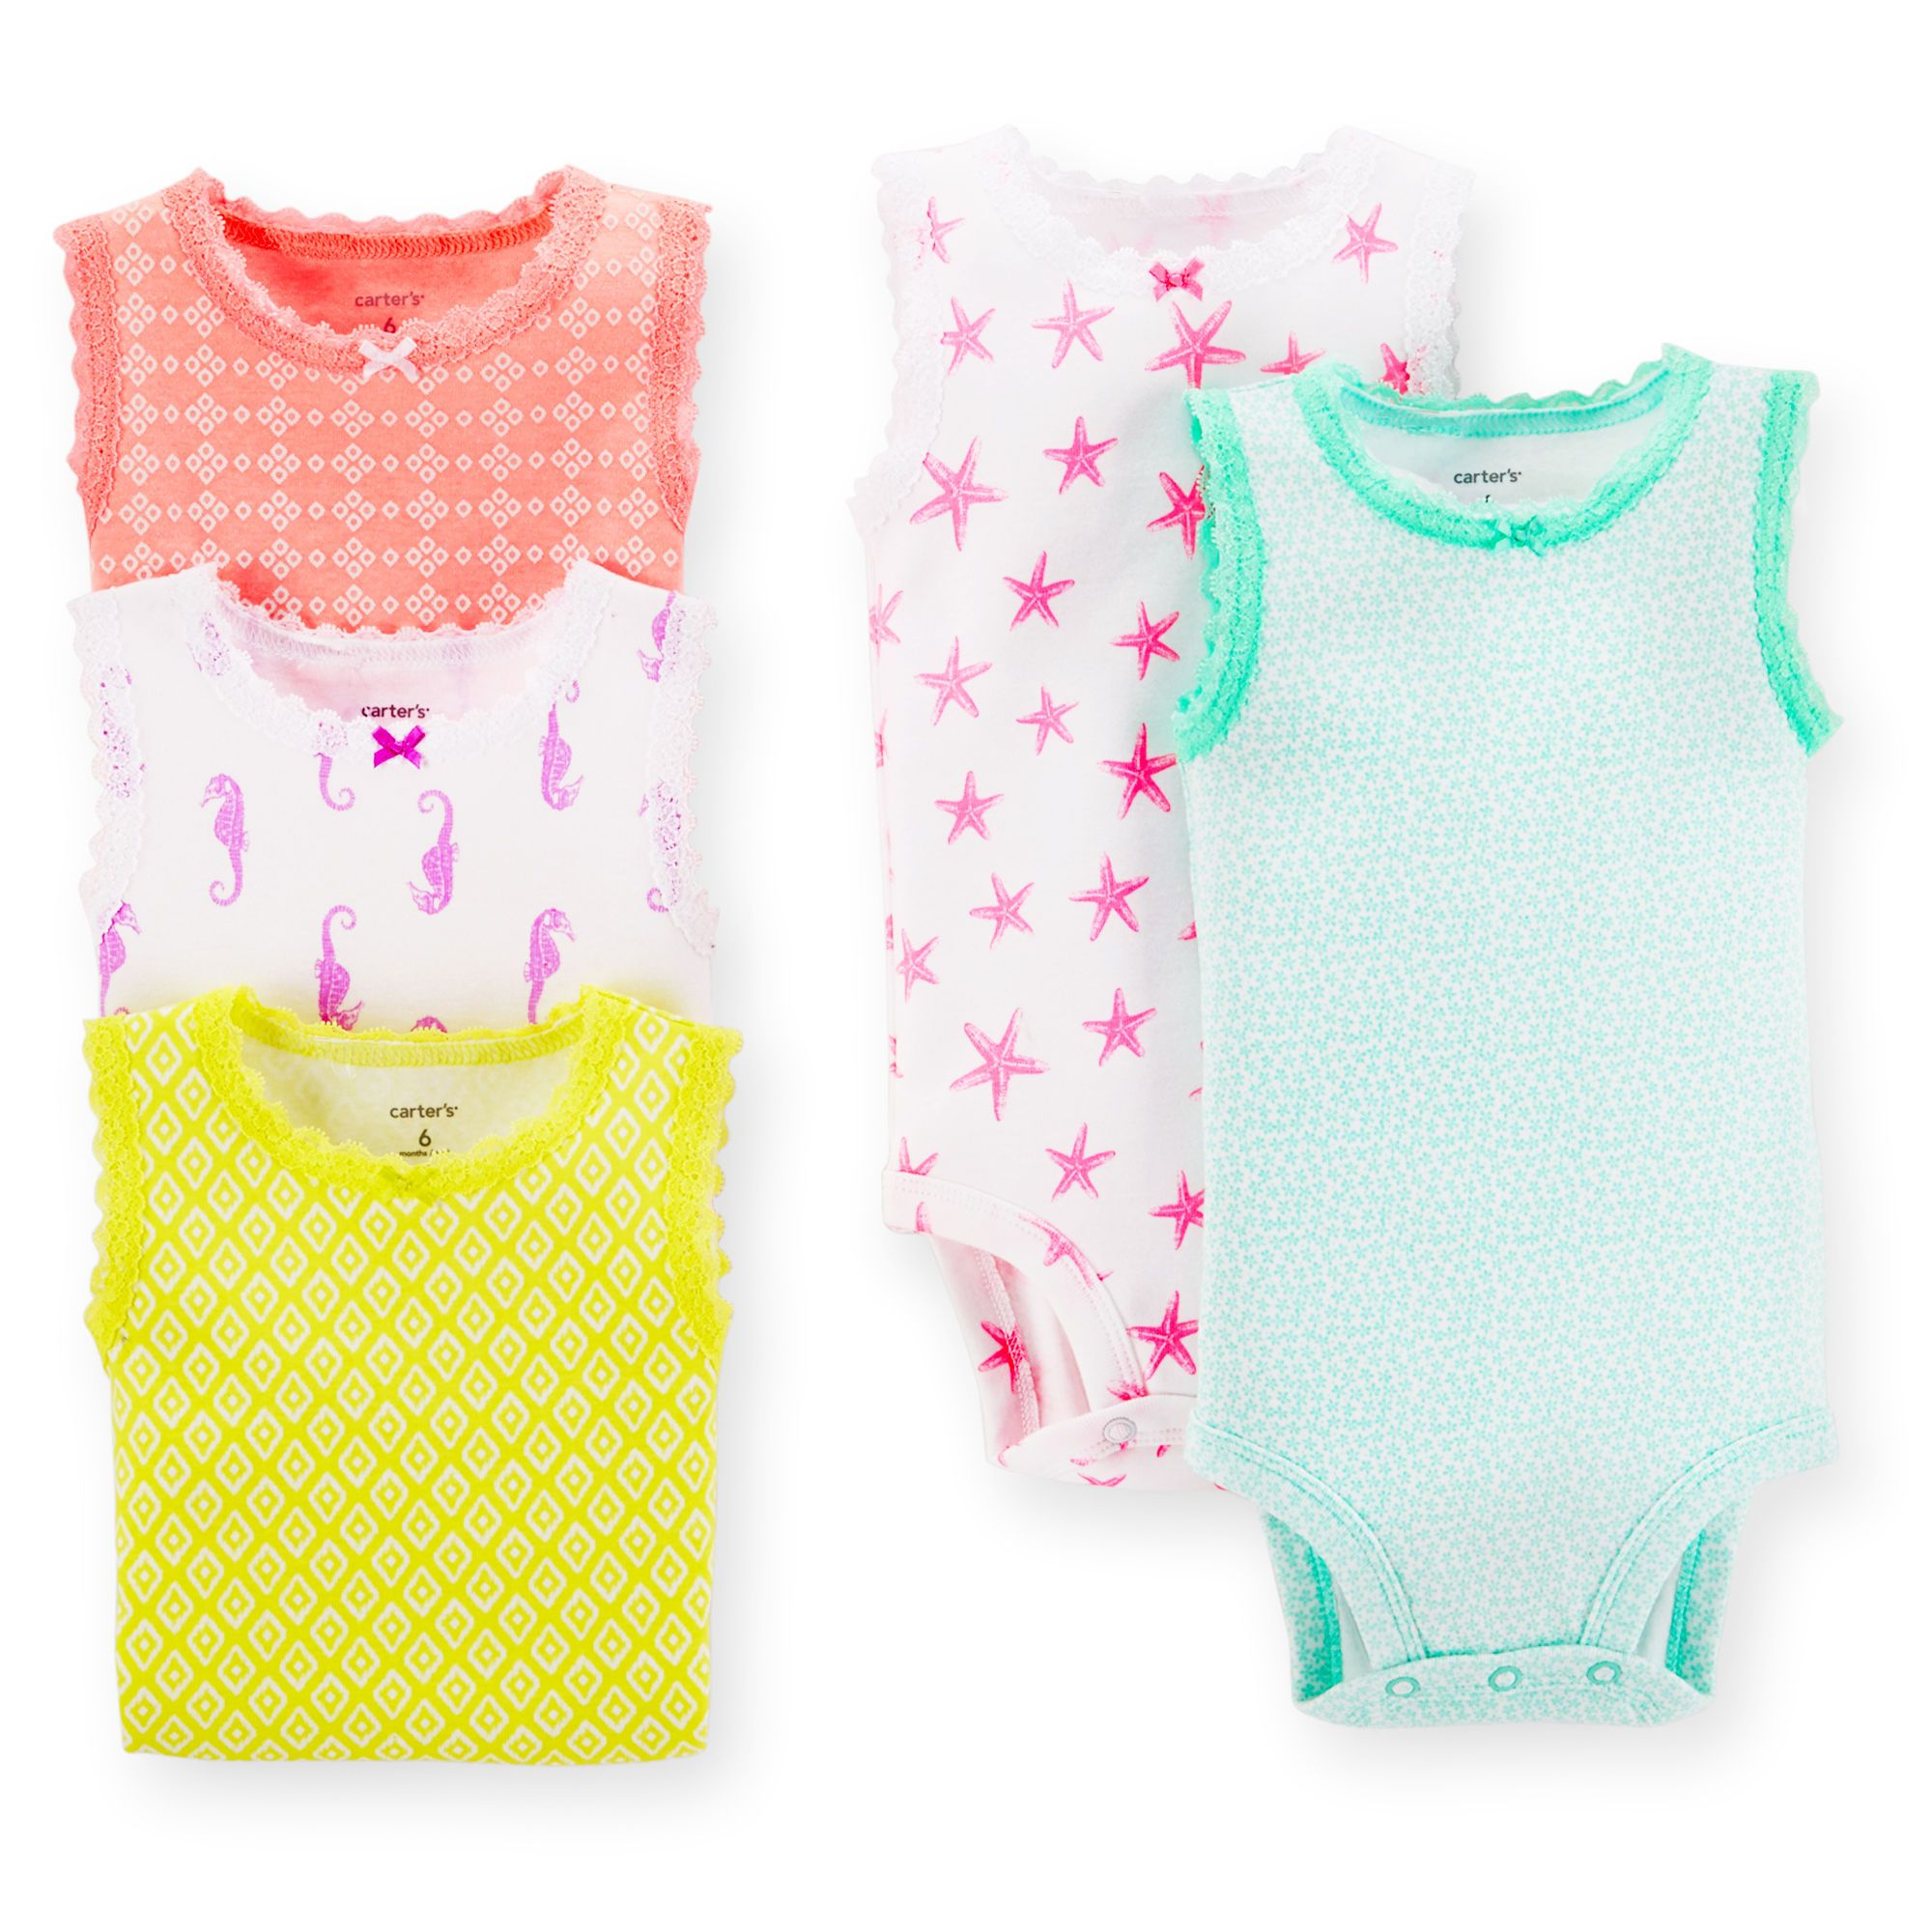 Carters Girls Printed 5 Pack Sleeveless Bodysuits In Assorted Colors